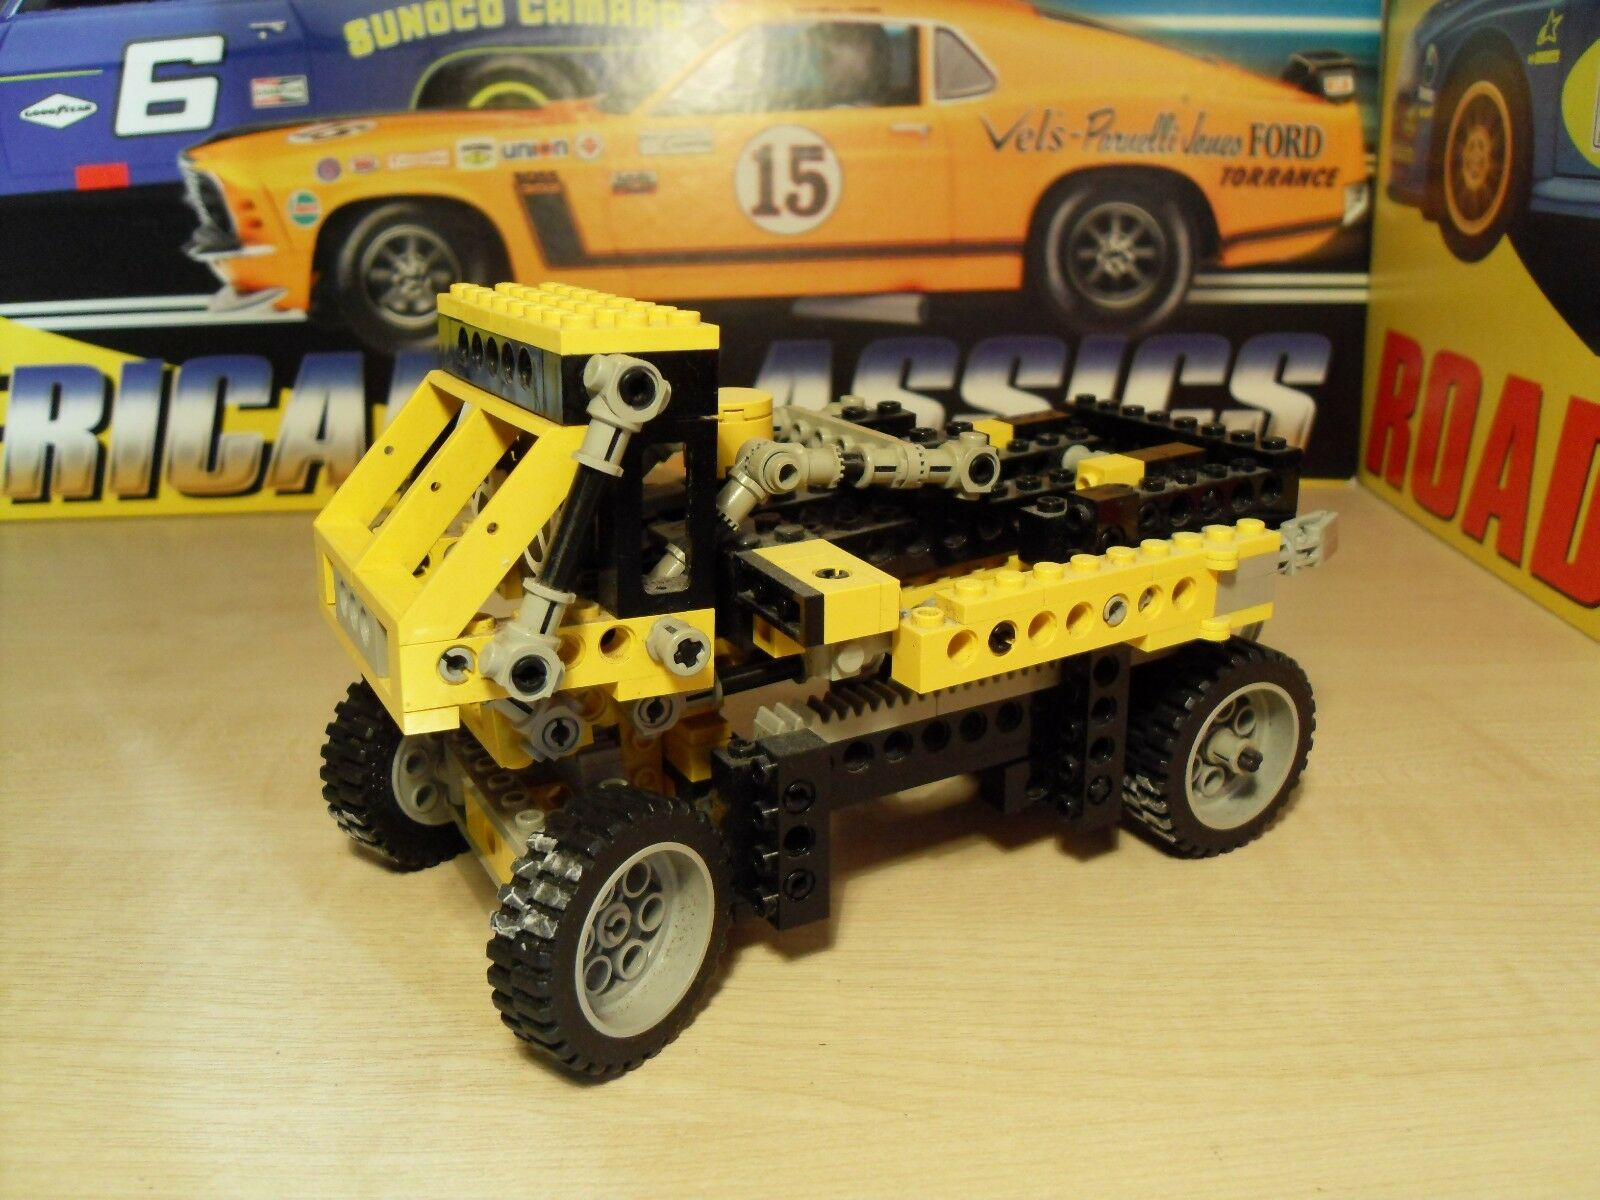 Lego Technic 8852 - Transformer Robot - Has been on display.